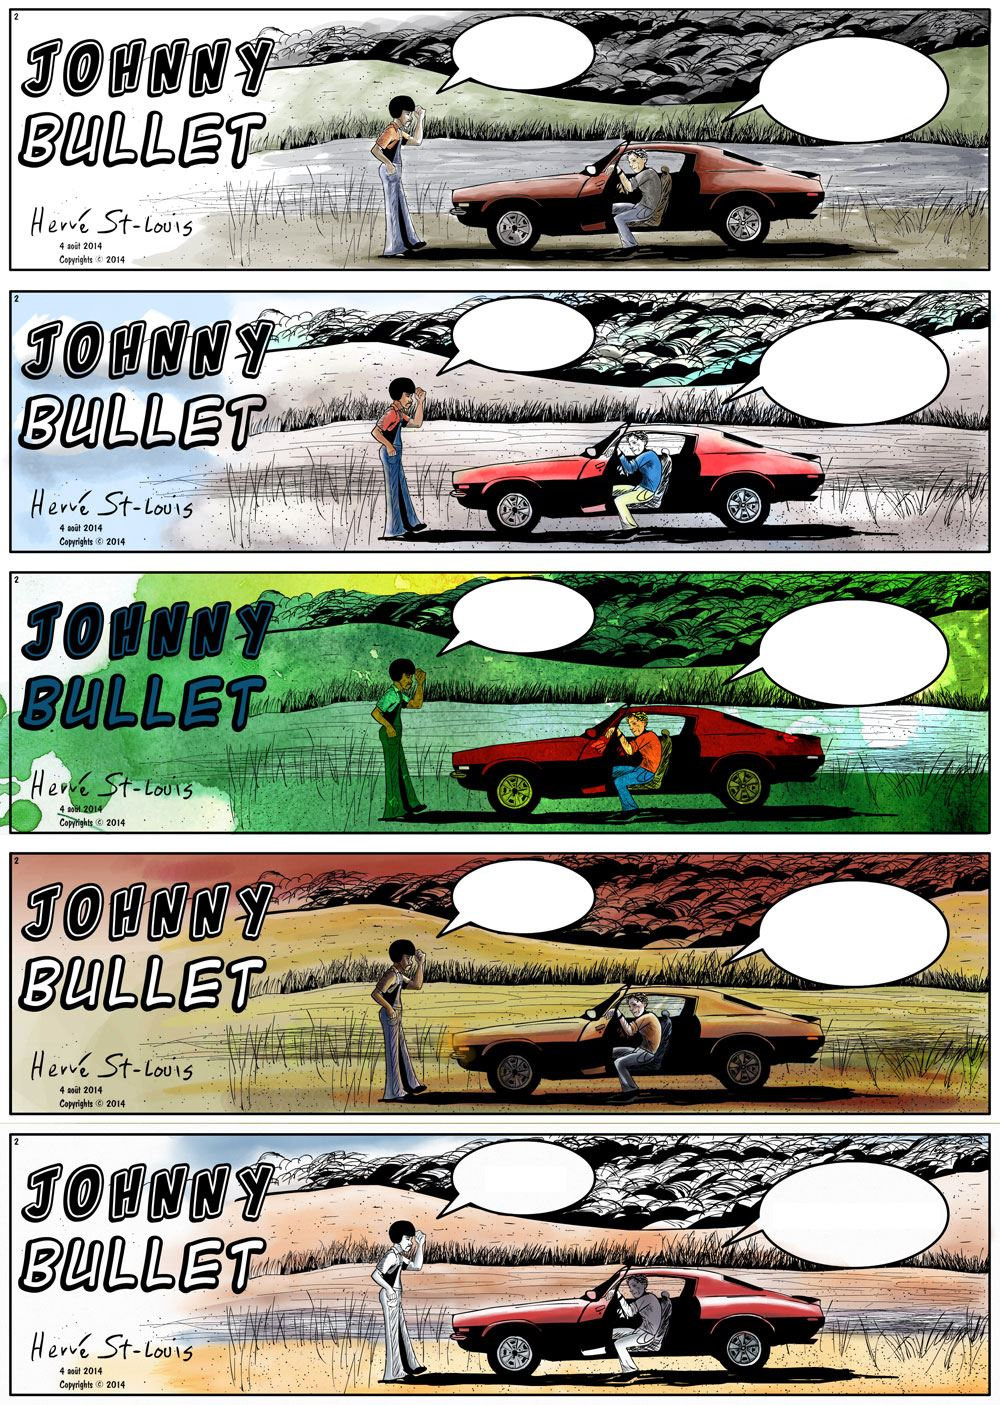 johnnybulletcolourtests001_1.jpg